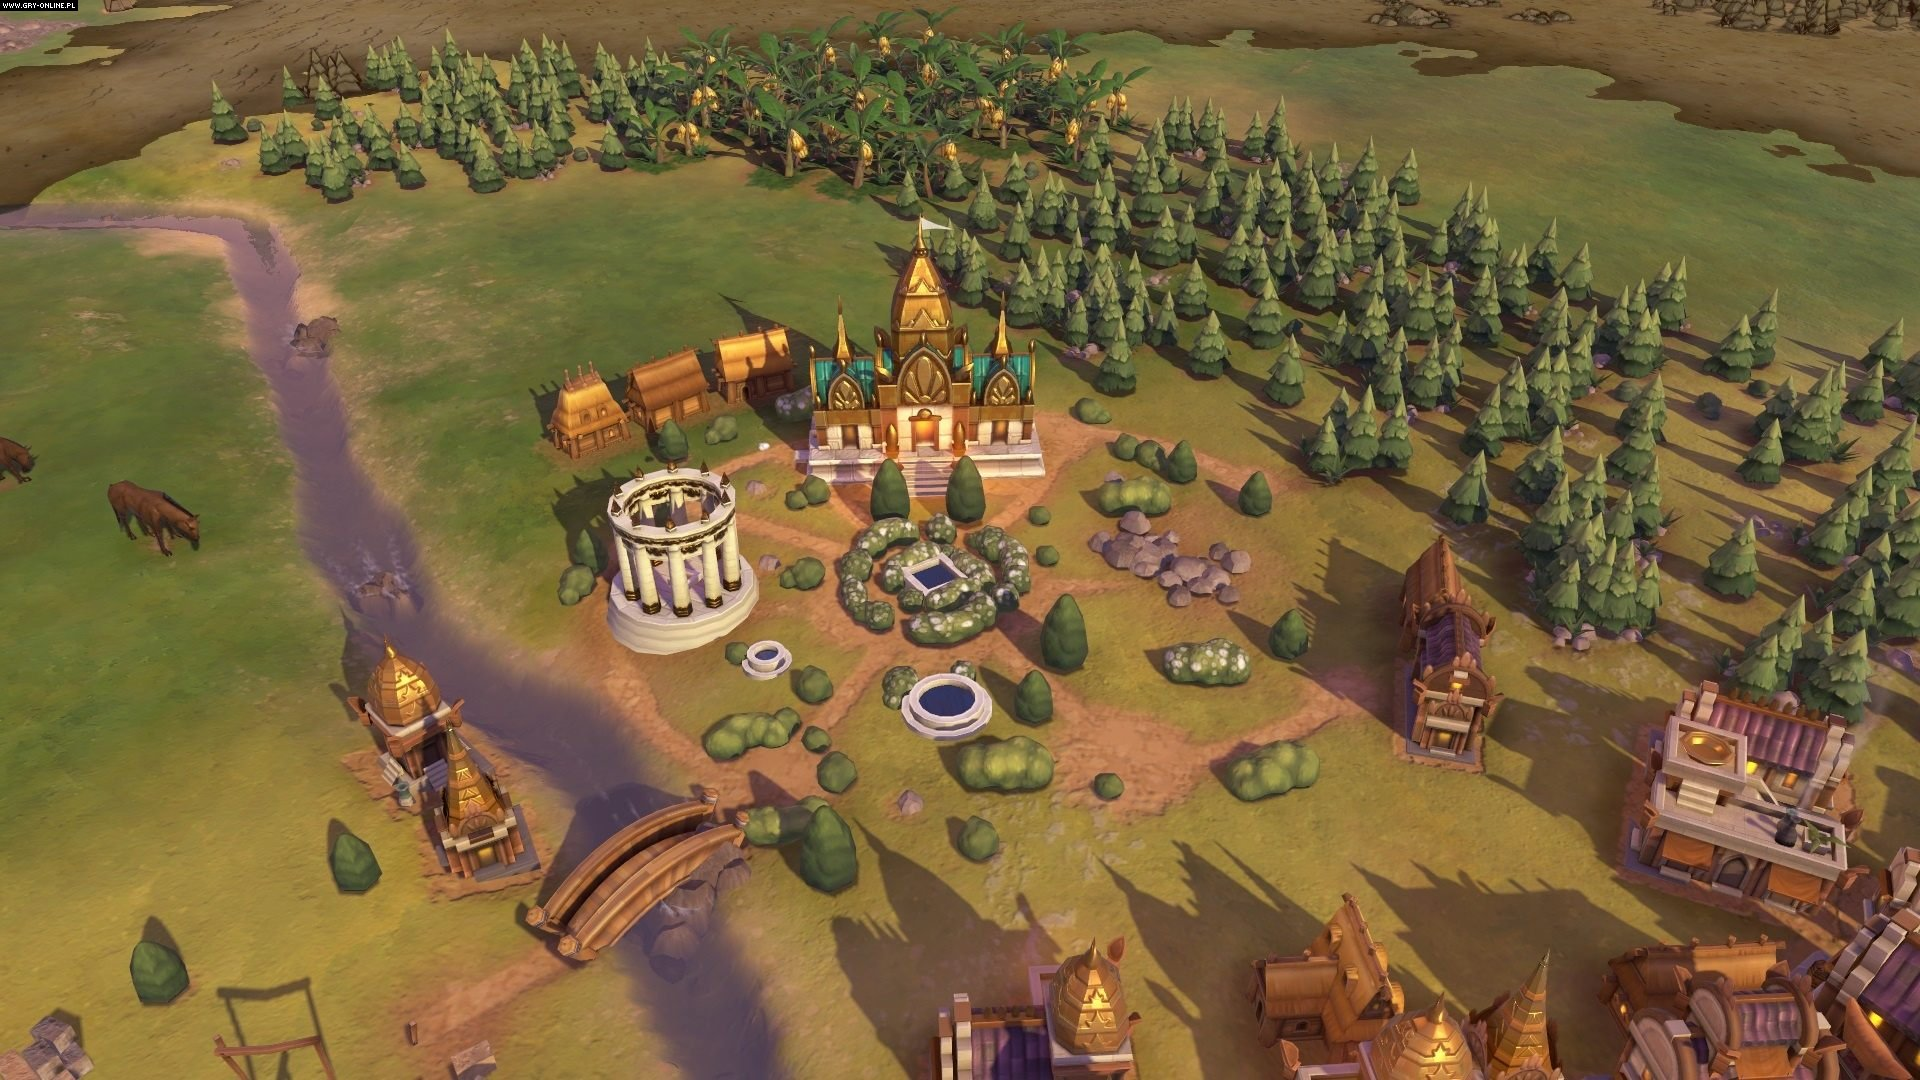 Sid Meier's Civilization VI PC, PS4, XONE, Switch Gry Screen 6/94, Firaxis Games, 2K Games